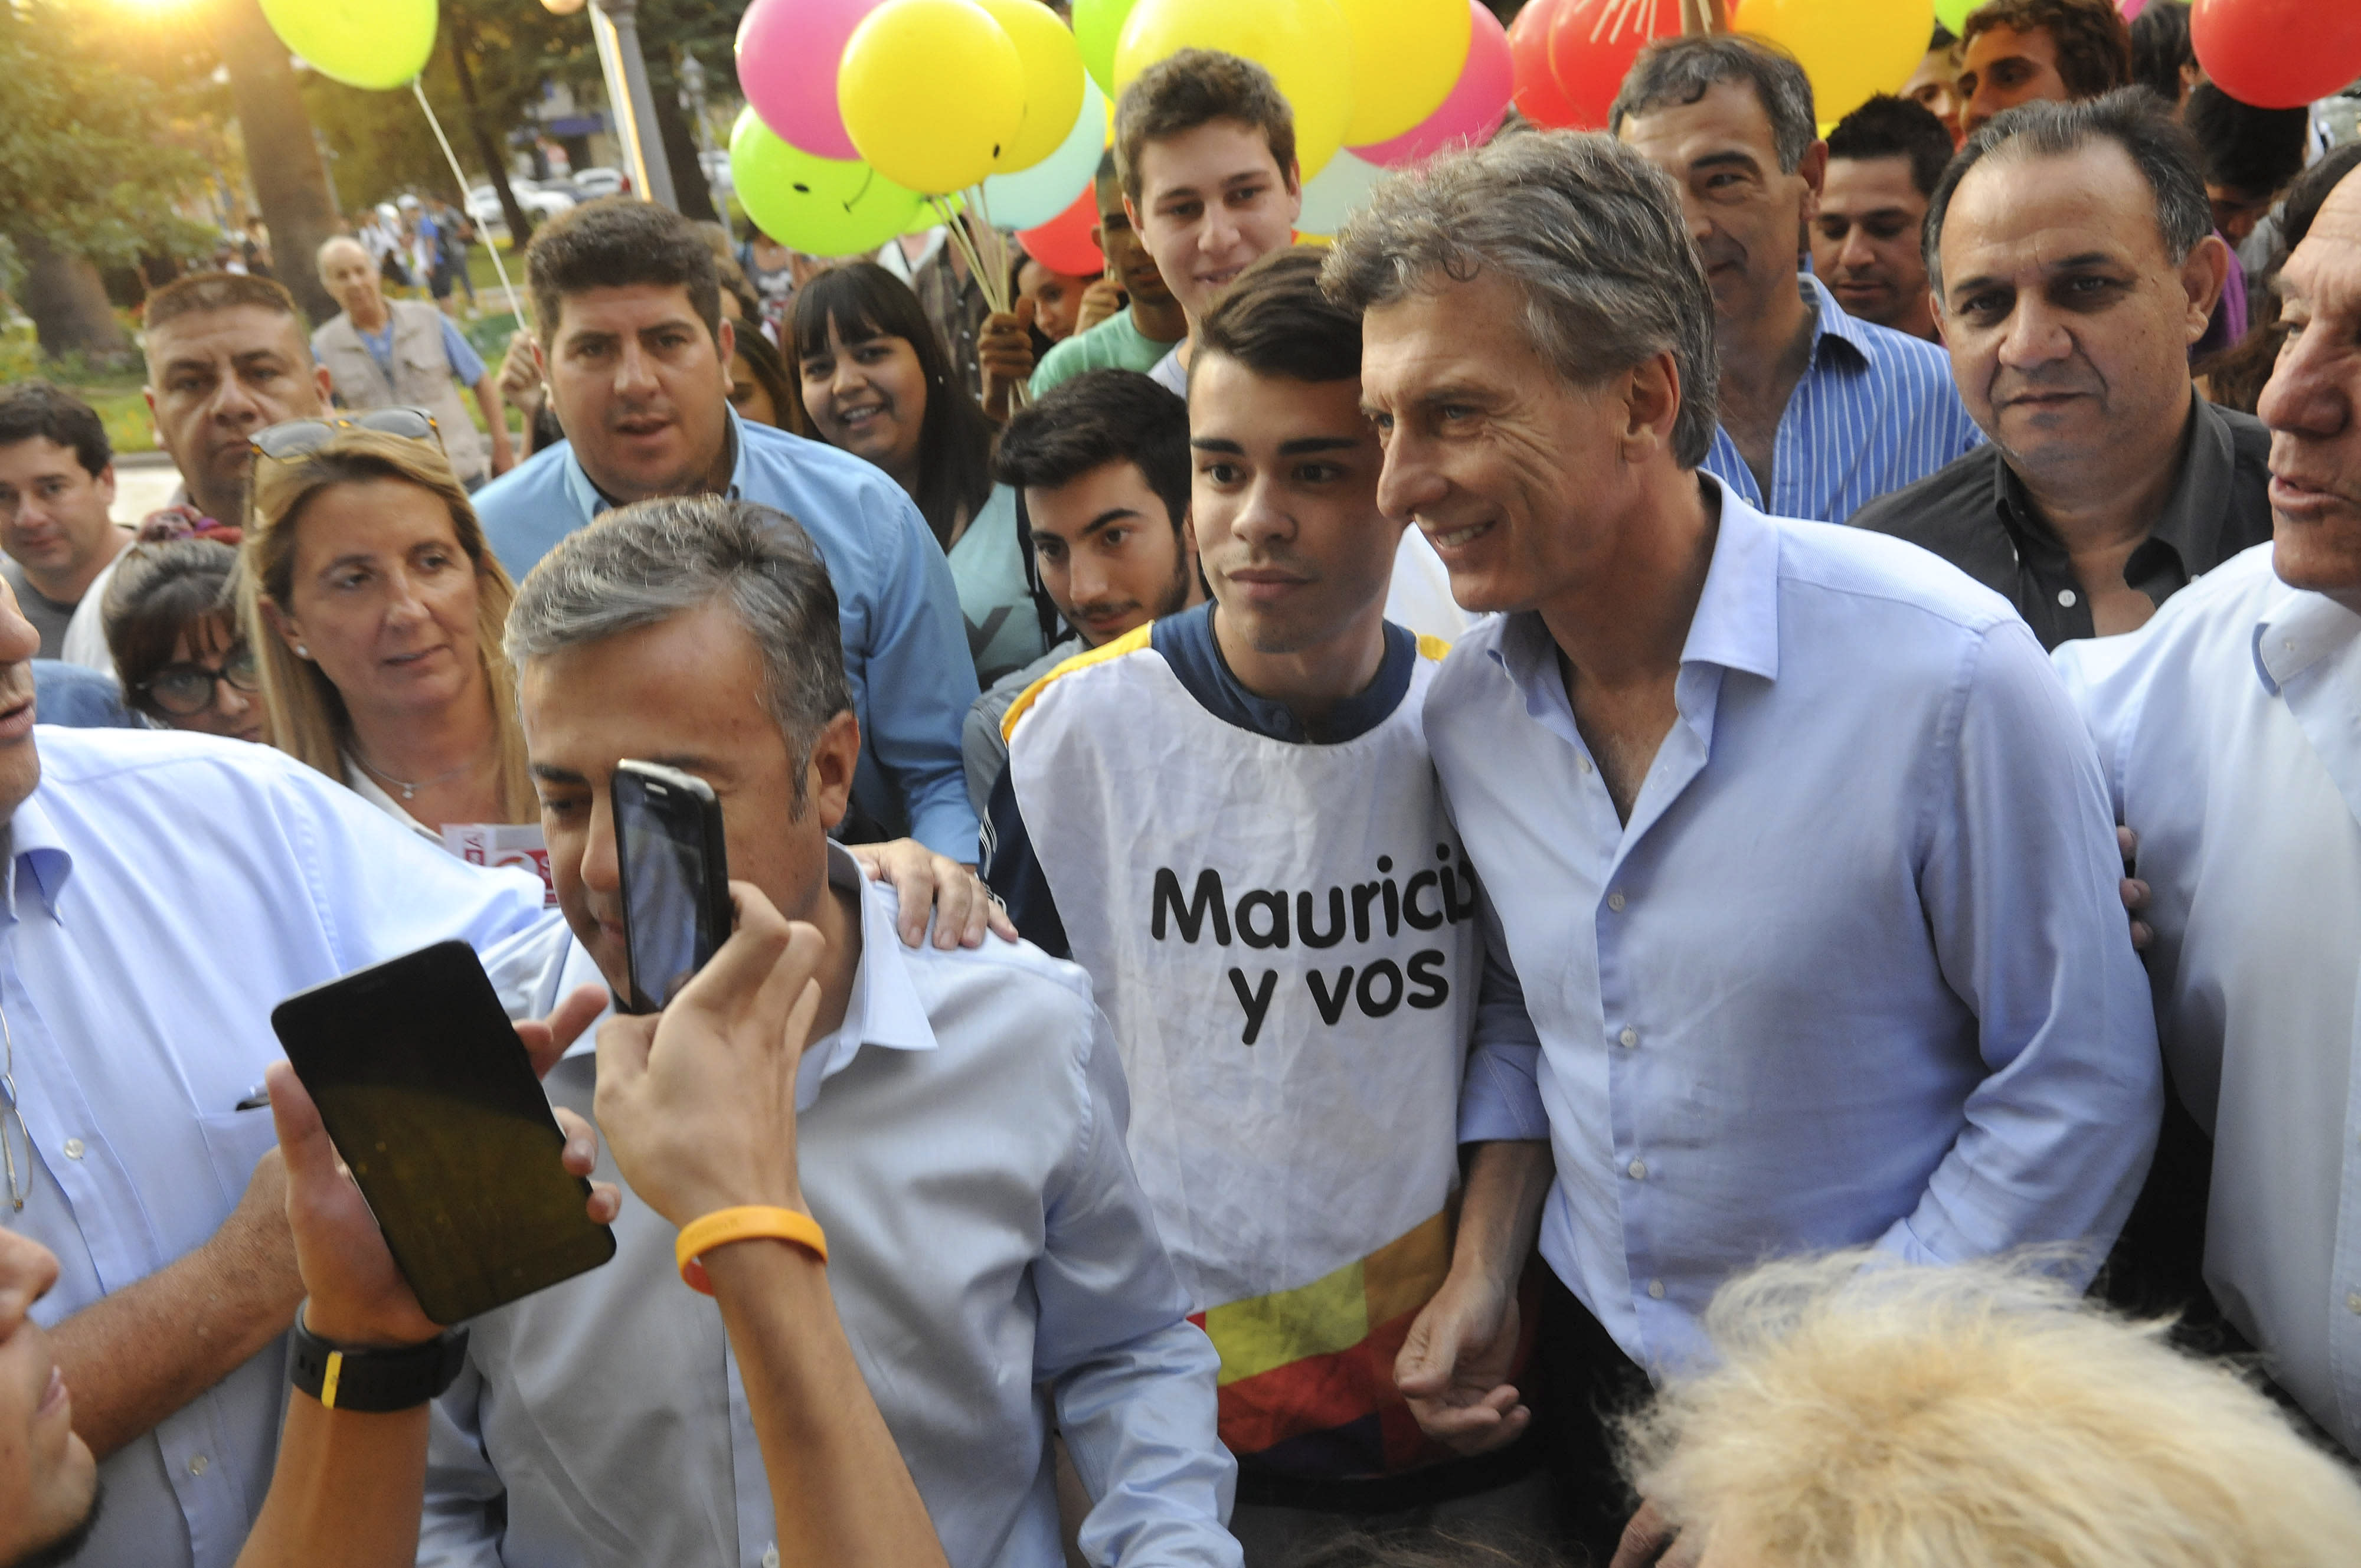 A leading candidate in Argentina would overhaul economy